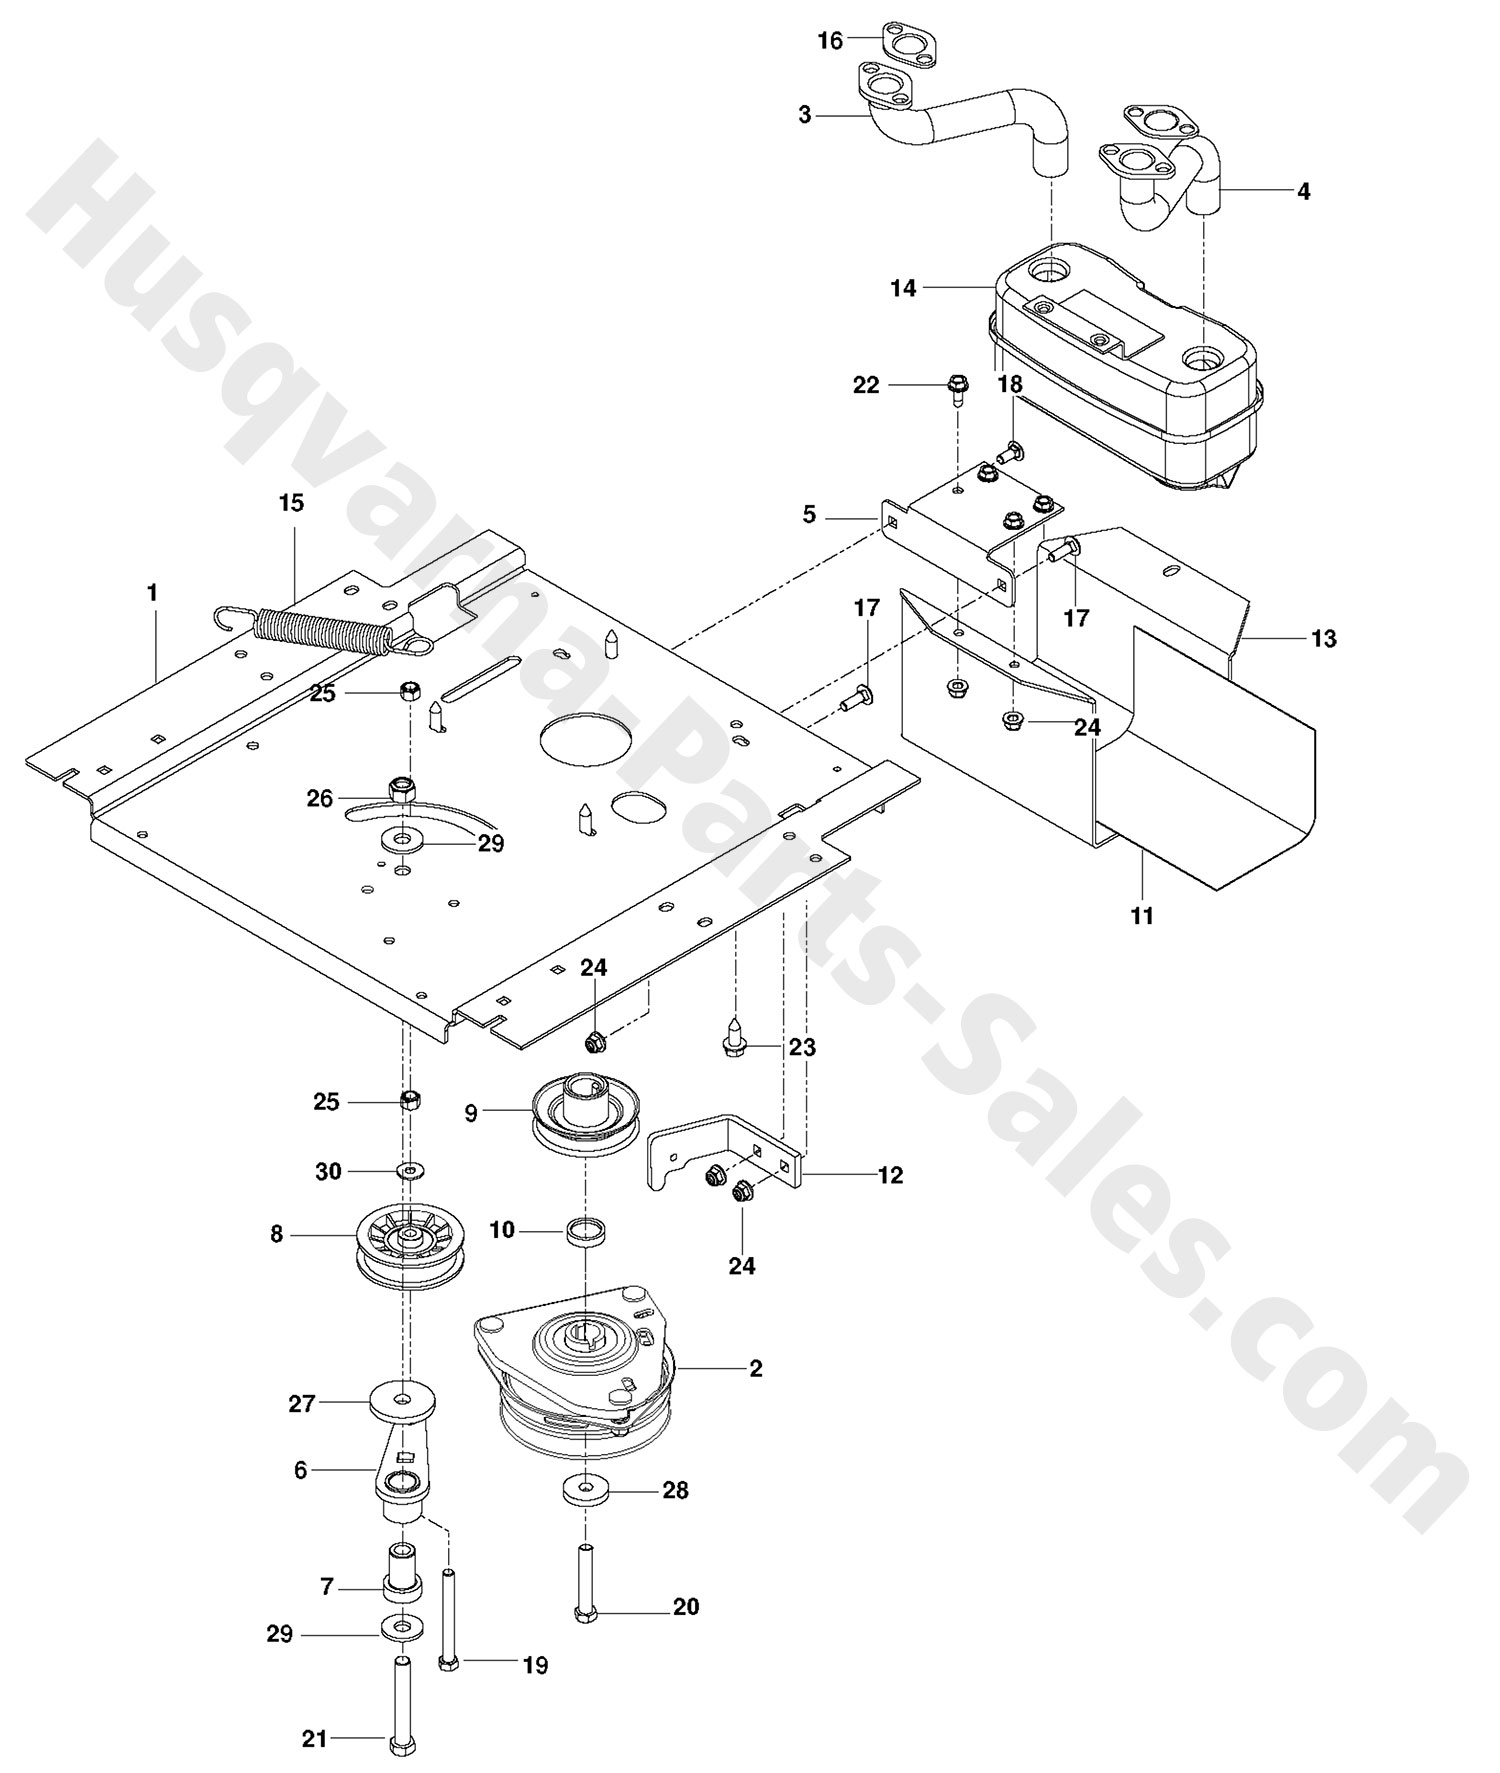 Husqvarna 125b Fuel Line Replacement Parts 350 Engine Diagram Wiring Diagrams Schematics 125e Routing Hu700f